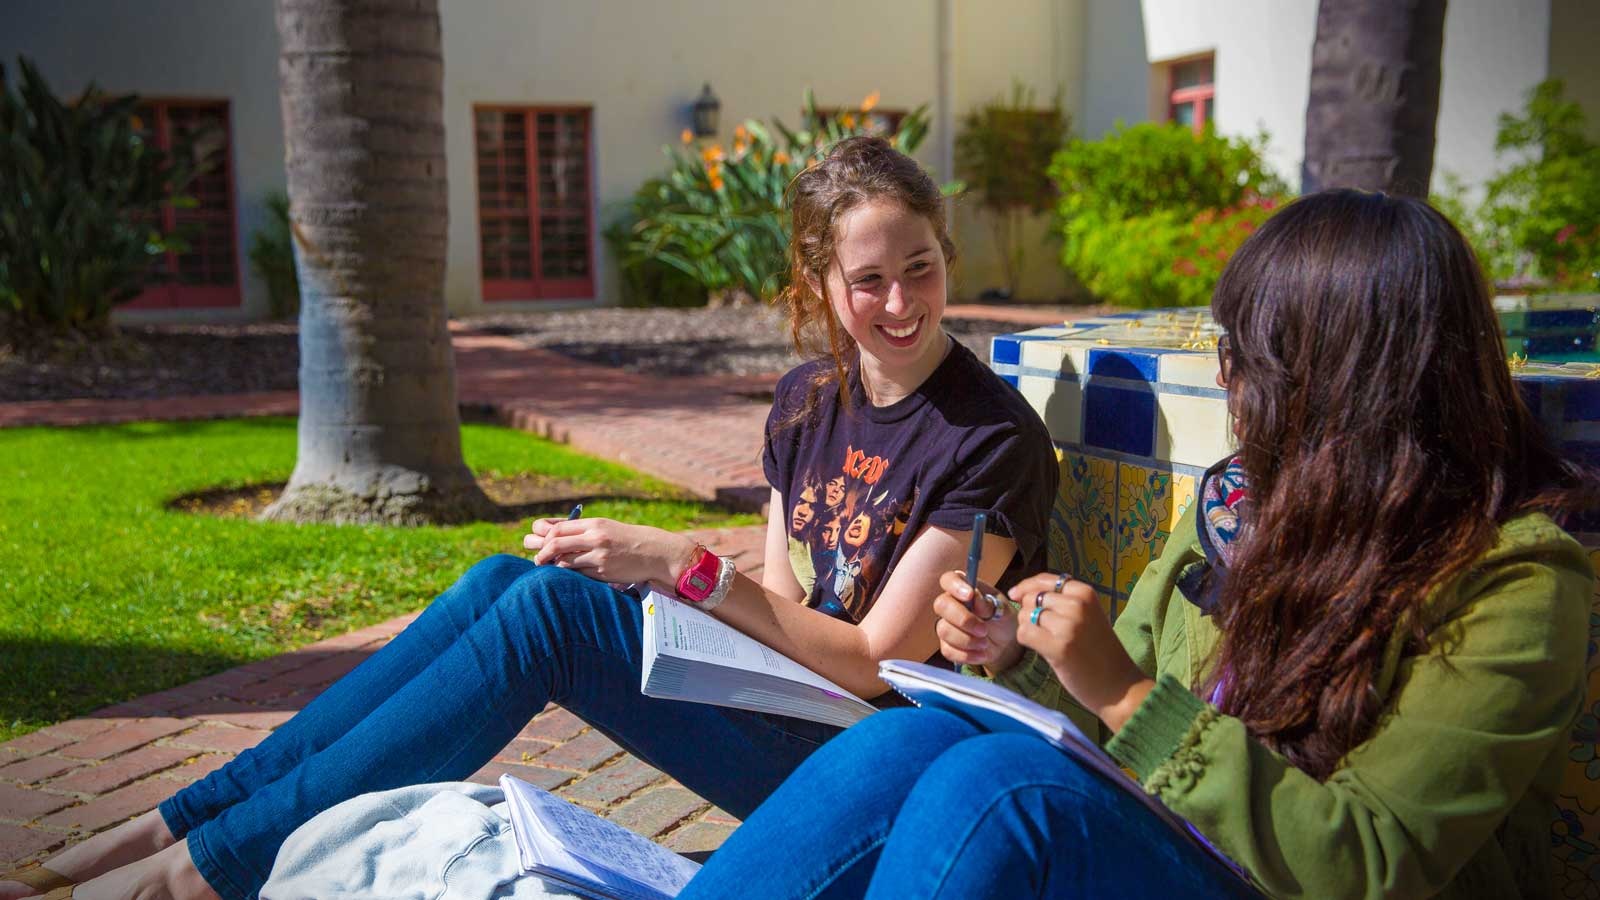 Experience a Day in the Life at CSUCI